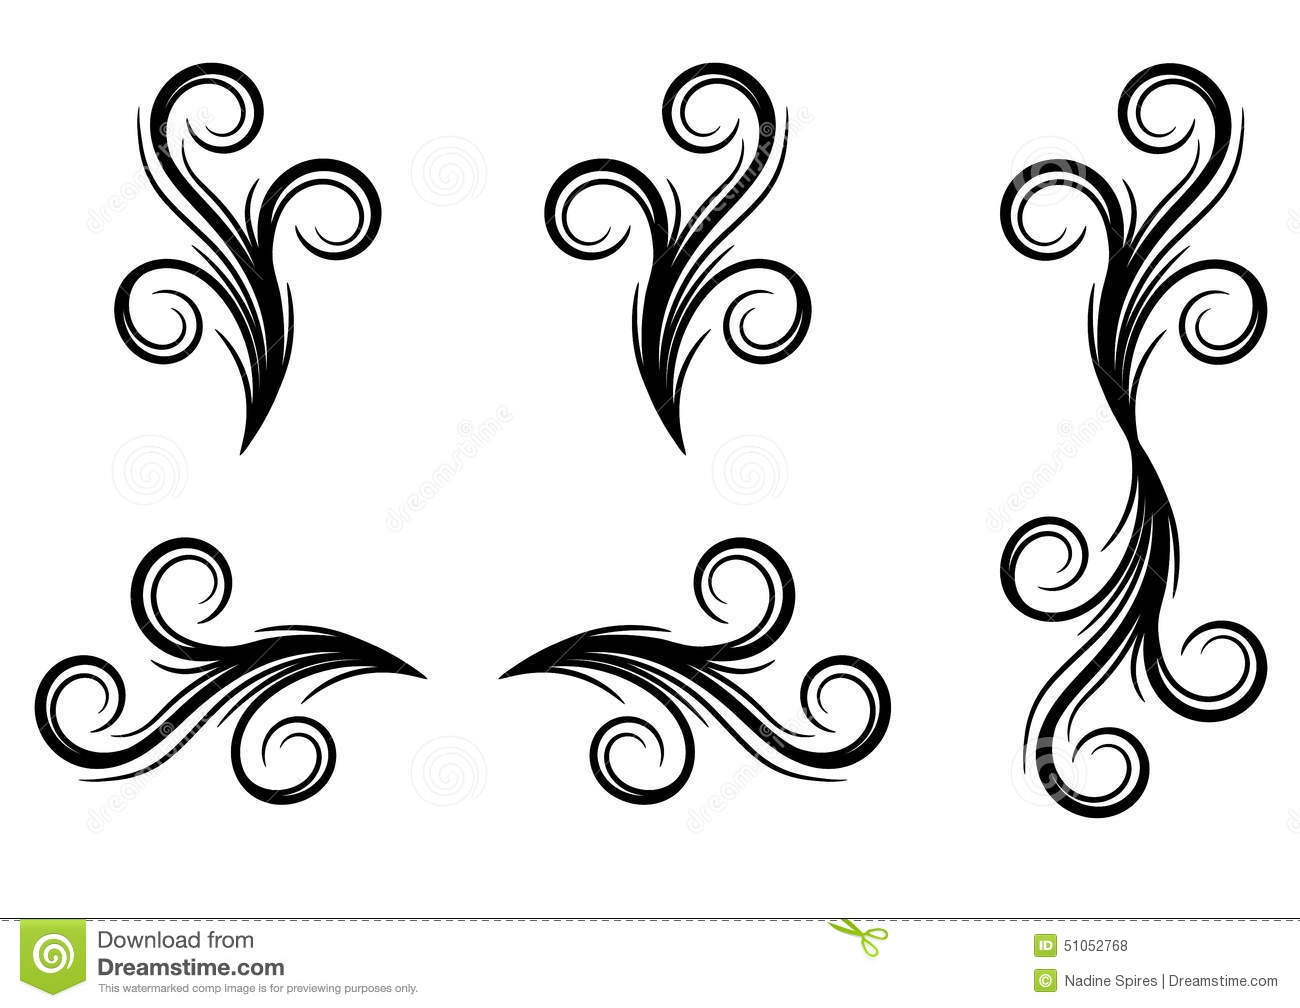 Swirl designs stock illustration image of illustration for Decoration drawing